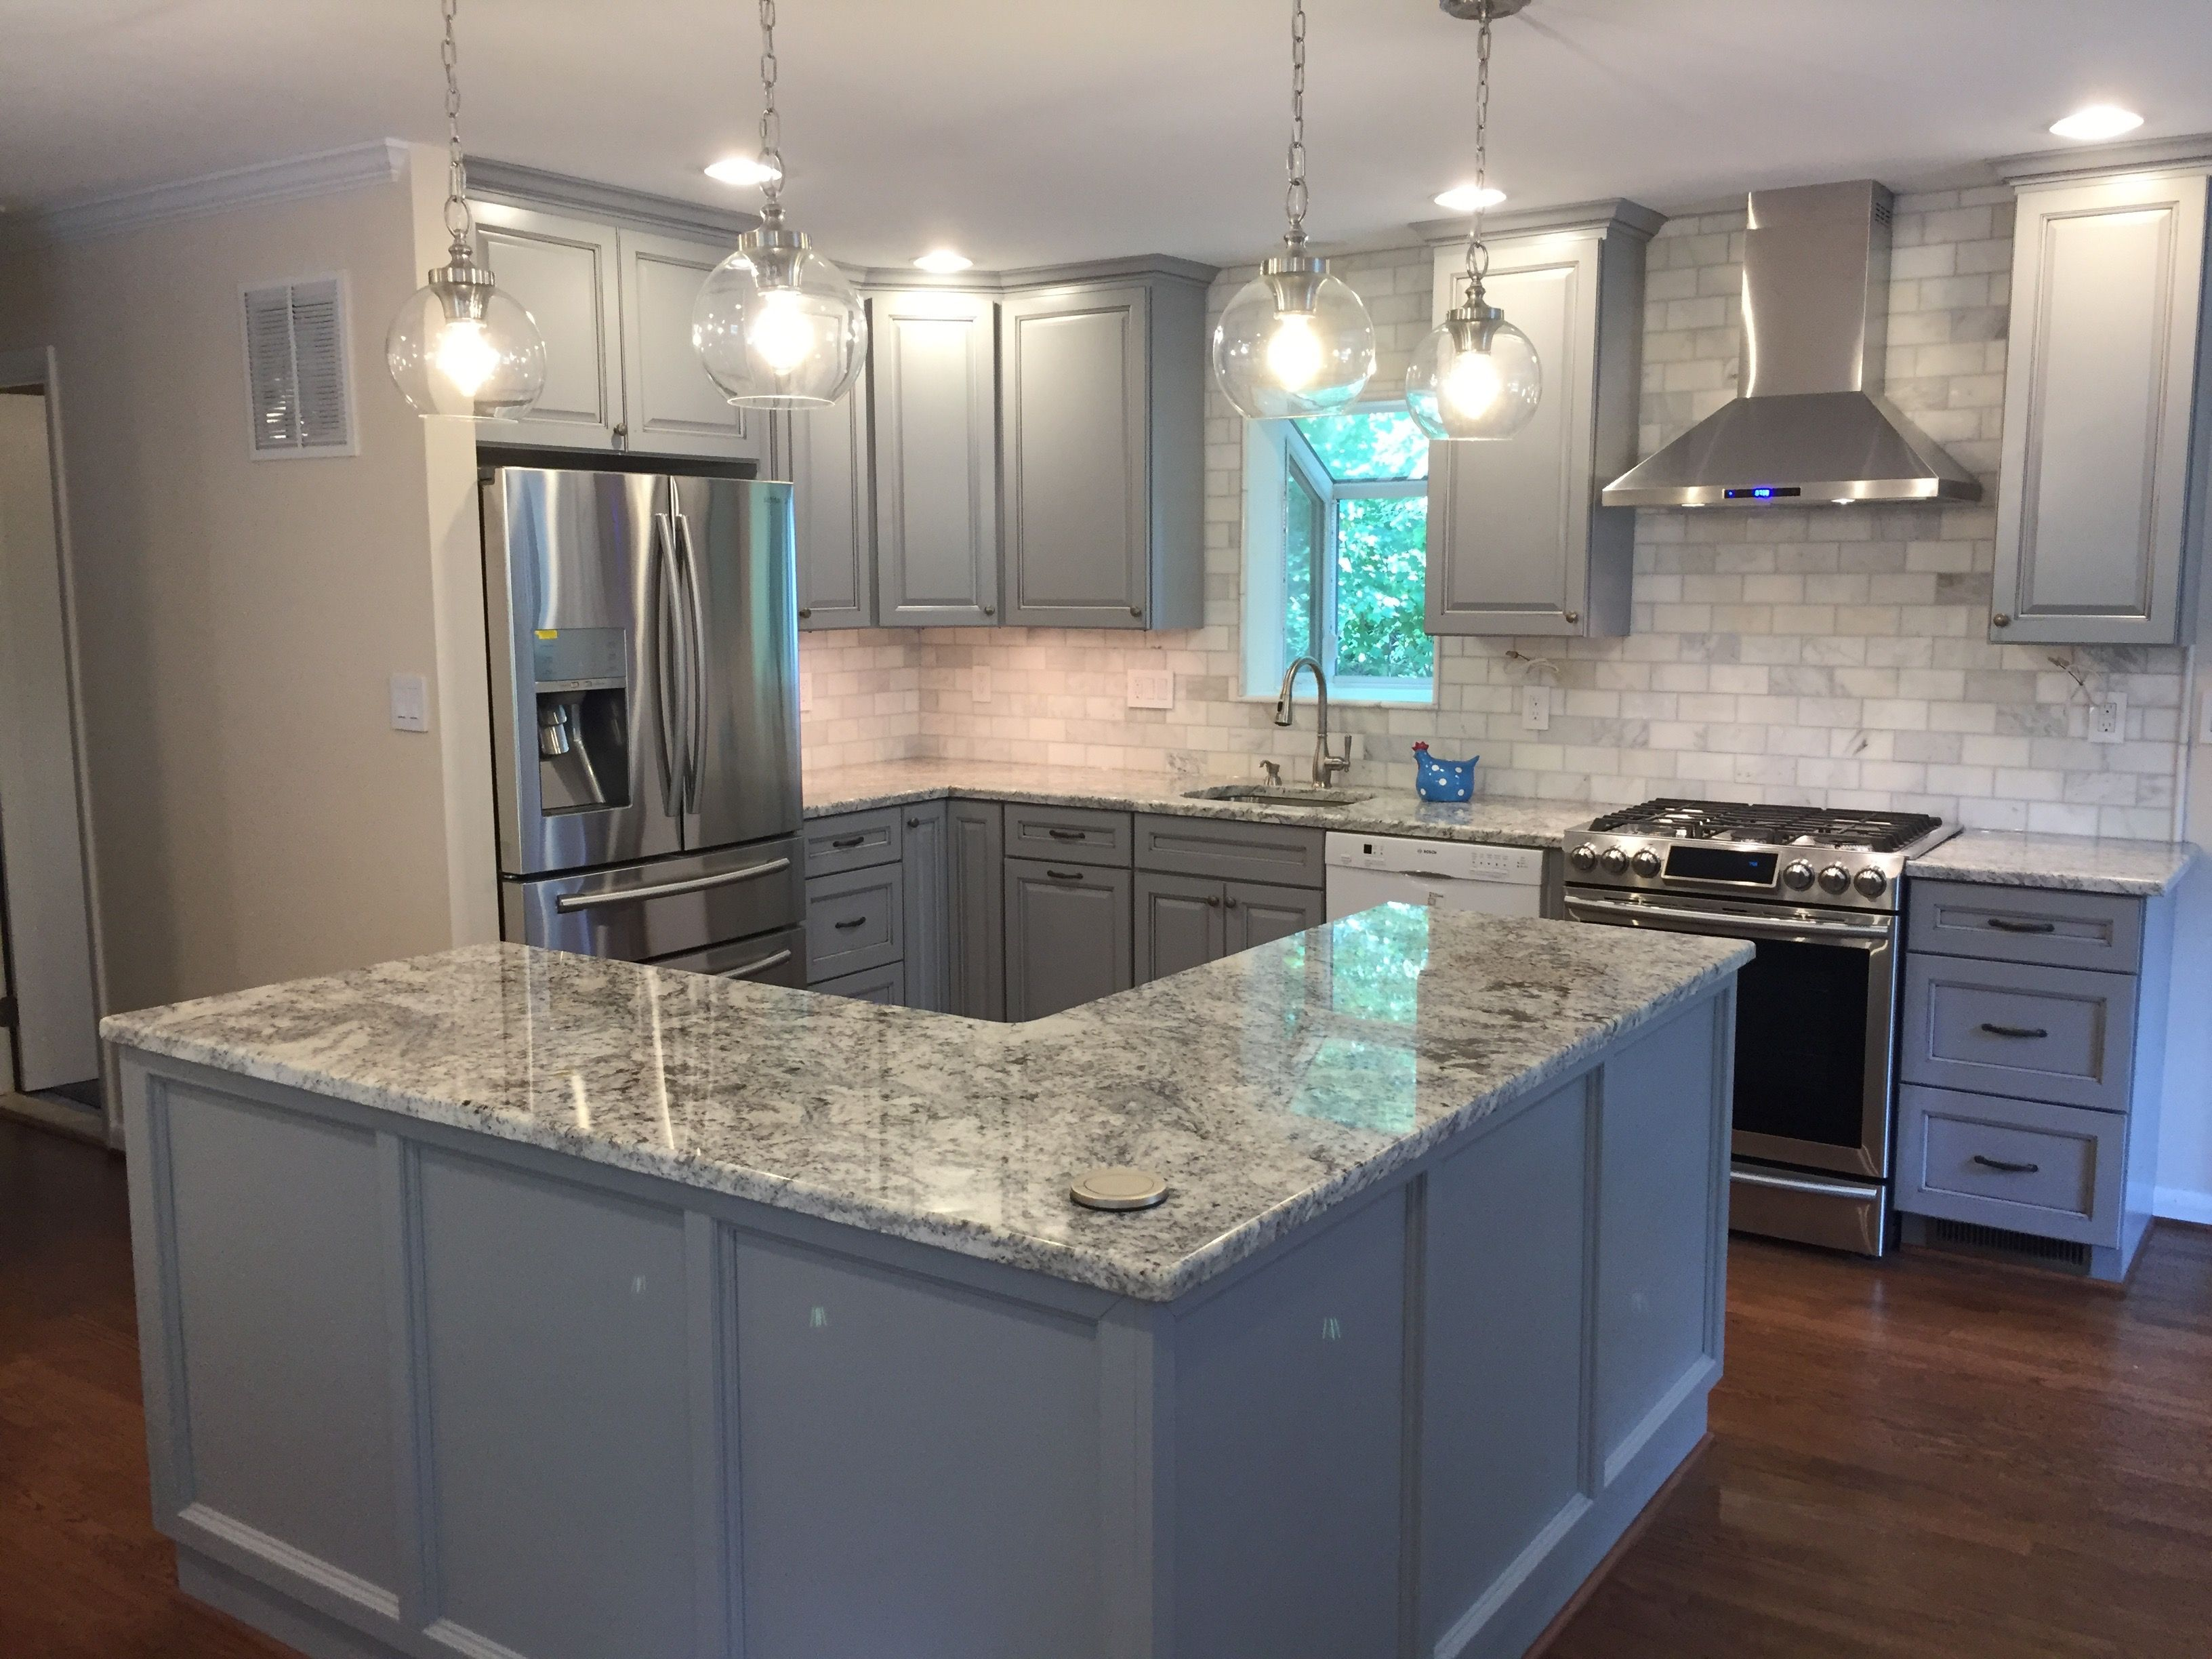 Kitchen Gray Granite Countertops : Bright blue grey kitchen created with baltic bay